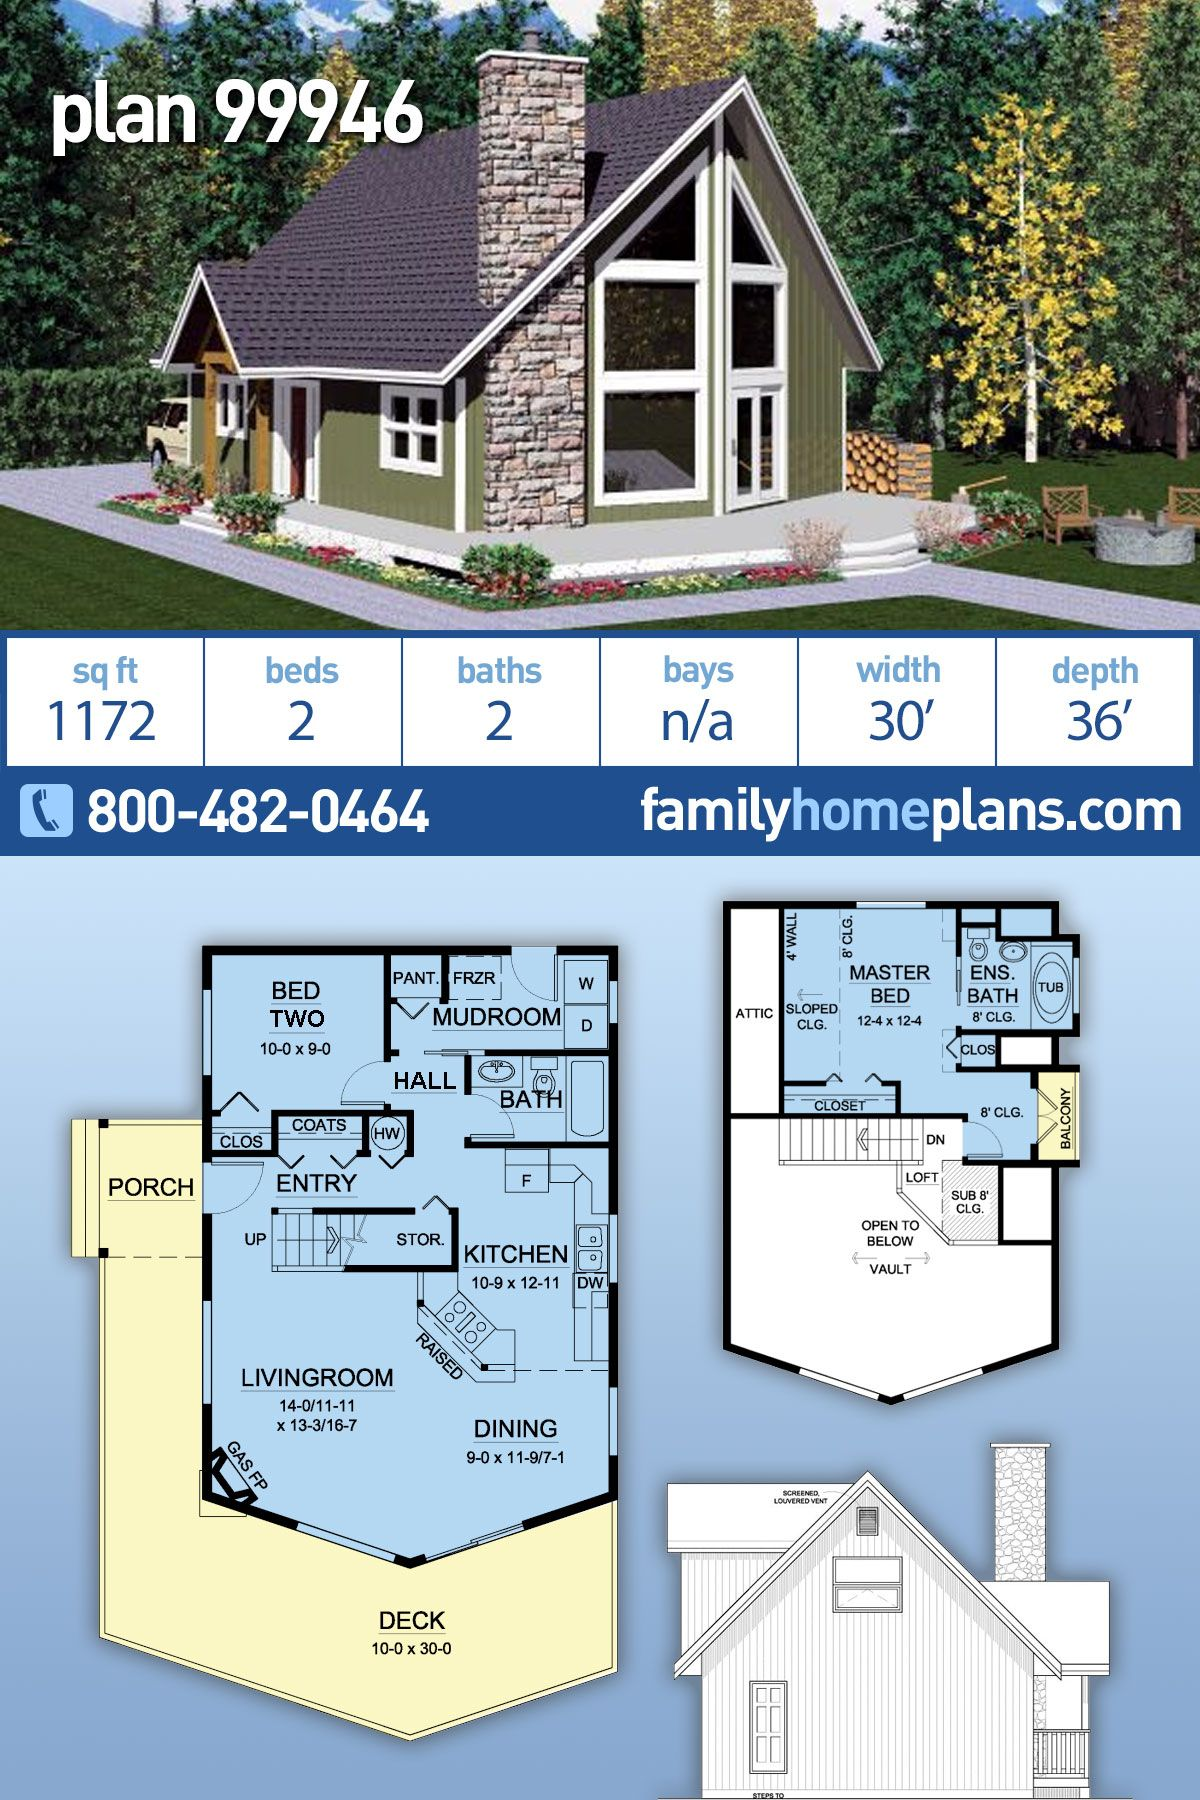 Contemporary Style House Plan 99946 With 2 Bed 2 Bath Contemporary House Plans Cabin Style Homes Cabin Plans With Loft